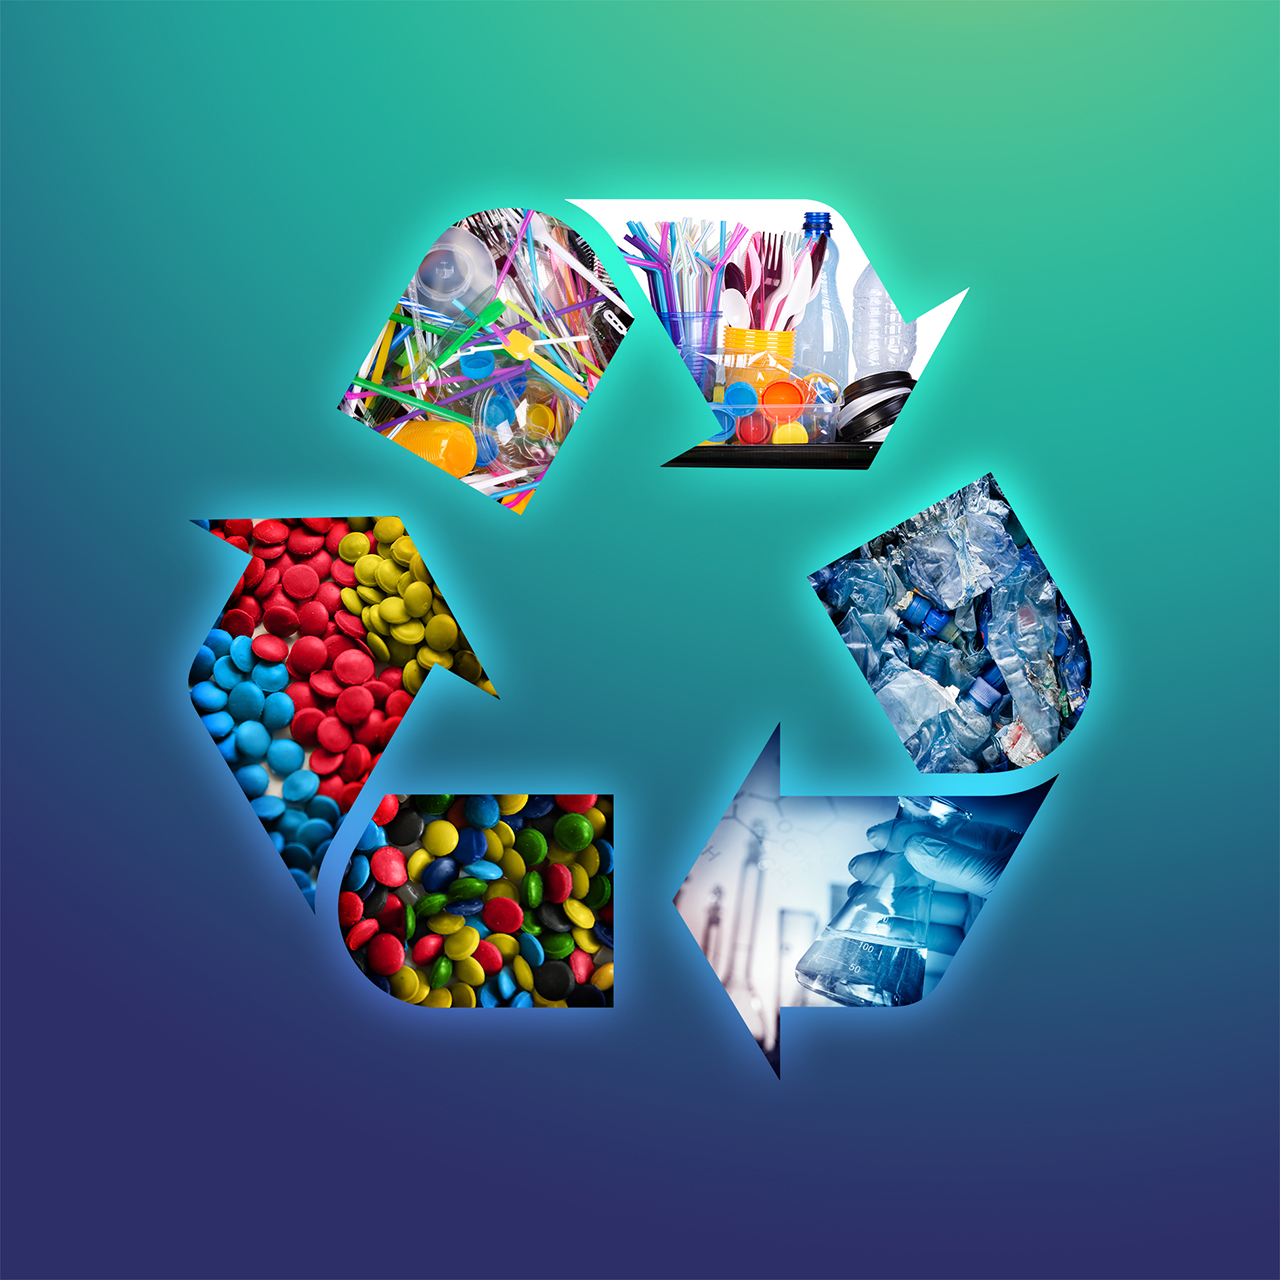 Keeping carbon in the cycle, thus avoiding plastic waste and emissions: That is the goal of the